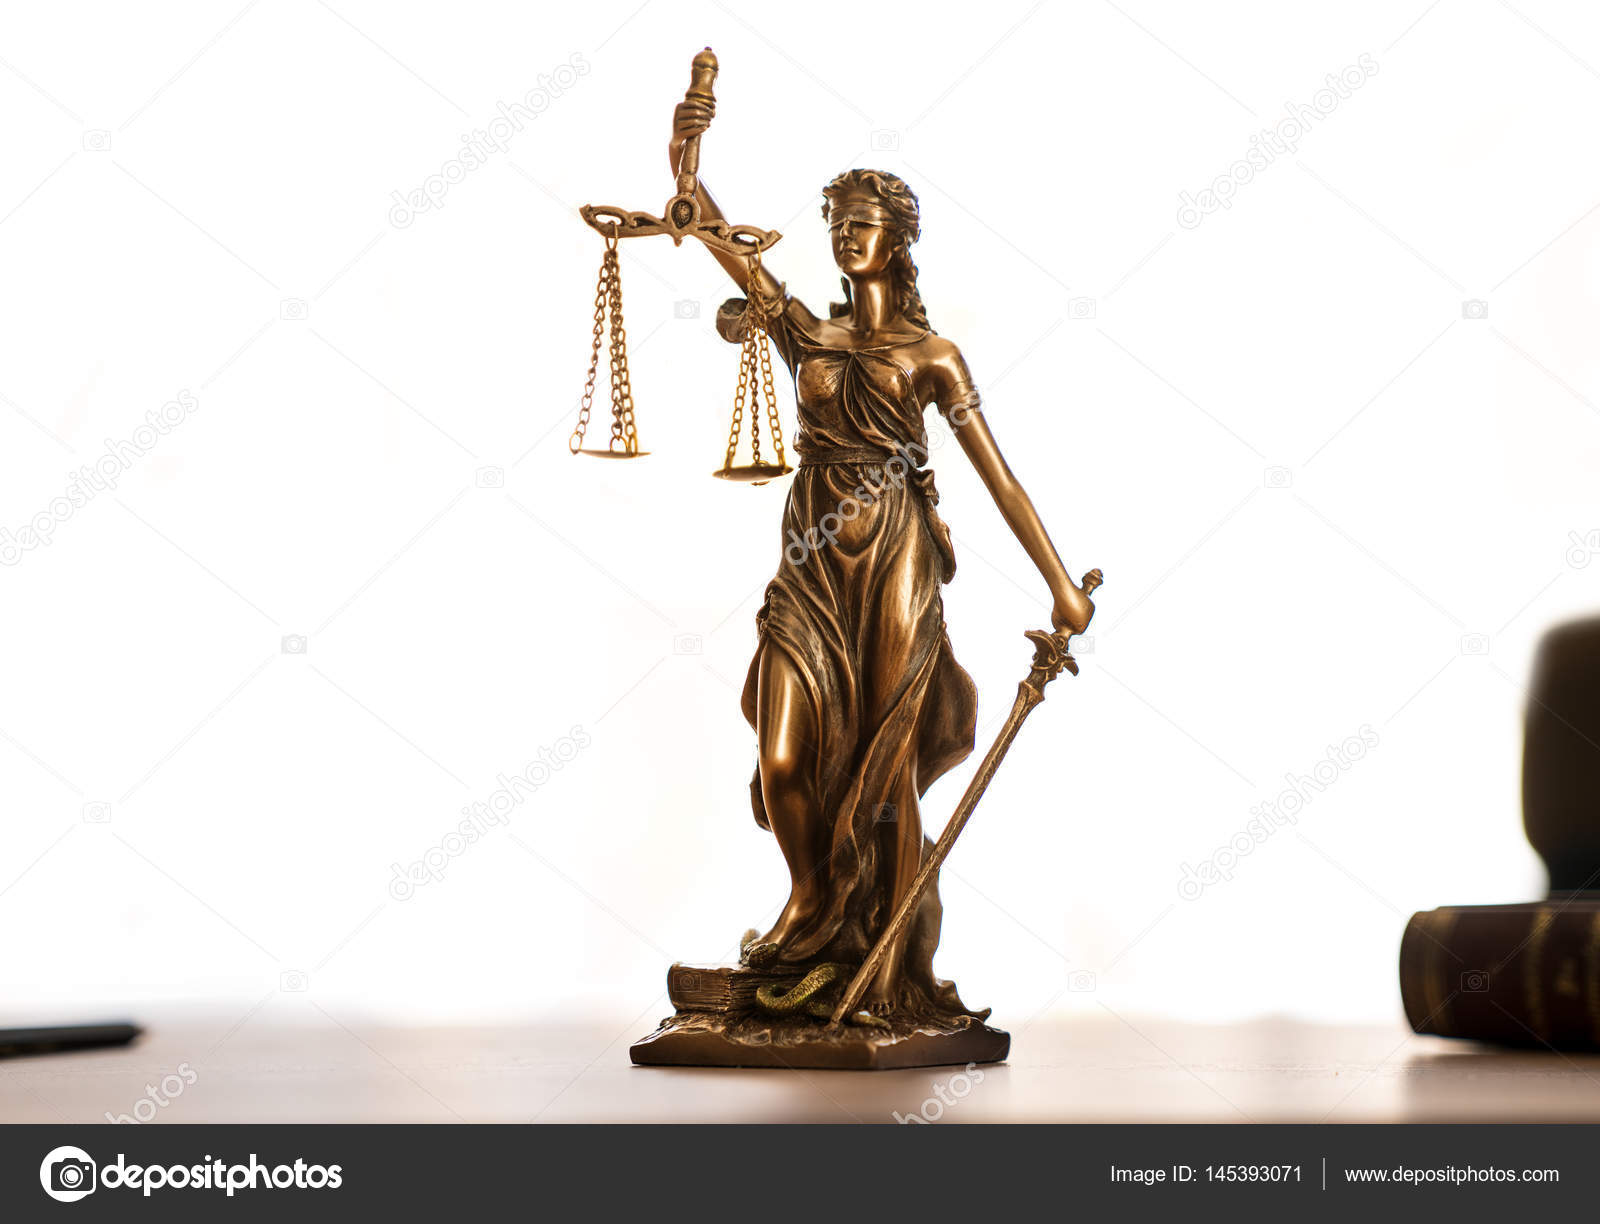 Lady justice statue stock photo aa w 145393071 lady justice statue stock photo buycottarizona